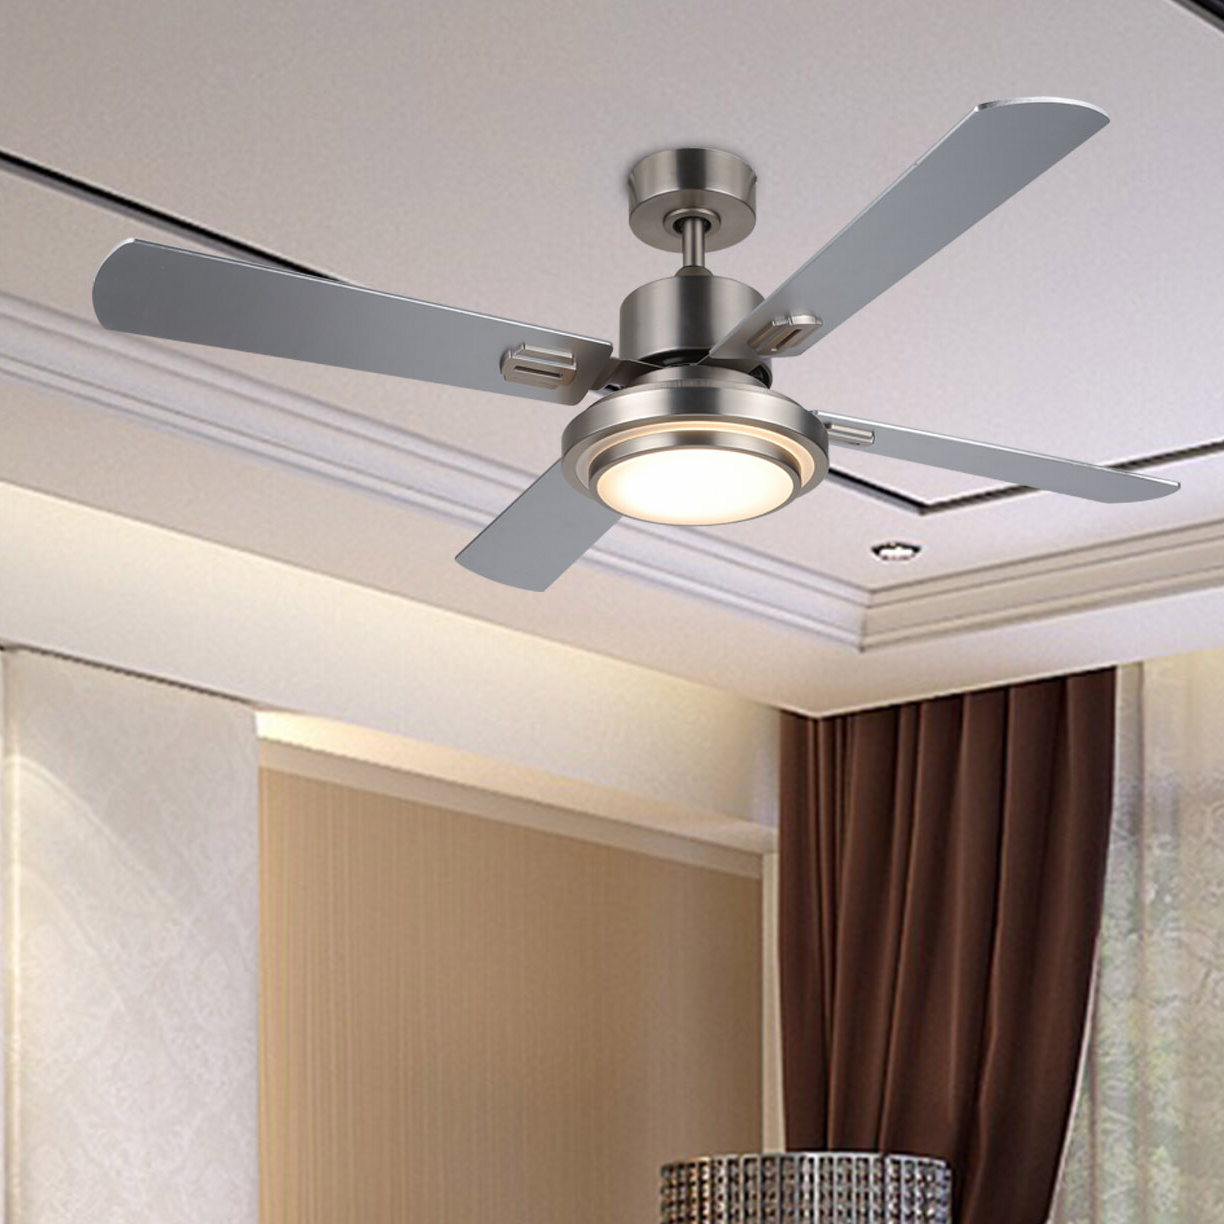 "Preferred Norah 5 Blade Ceiling Fans Pertaining To 52"" Santaana 4 Blade Led Ceiling Fan With Remote, Light Kit Included (View 14 of 20)"